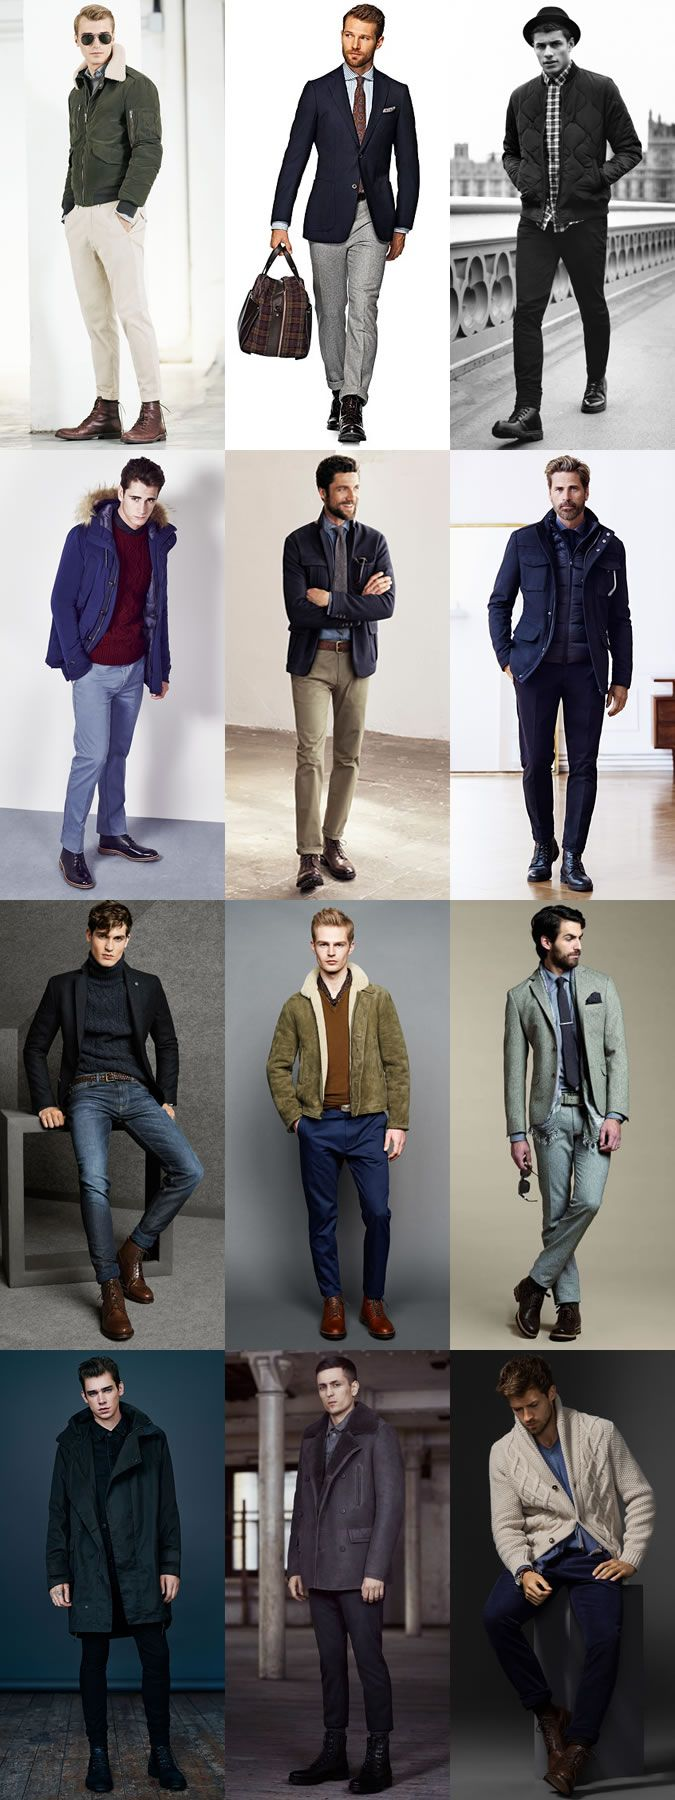 Men's Leather Lace-Up Boots Outfit Inspiration Lookbook